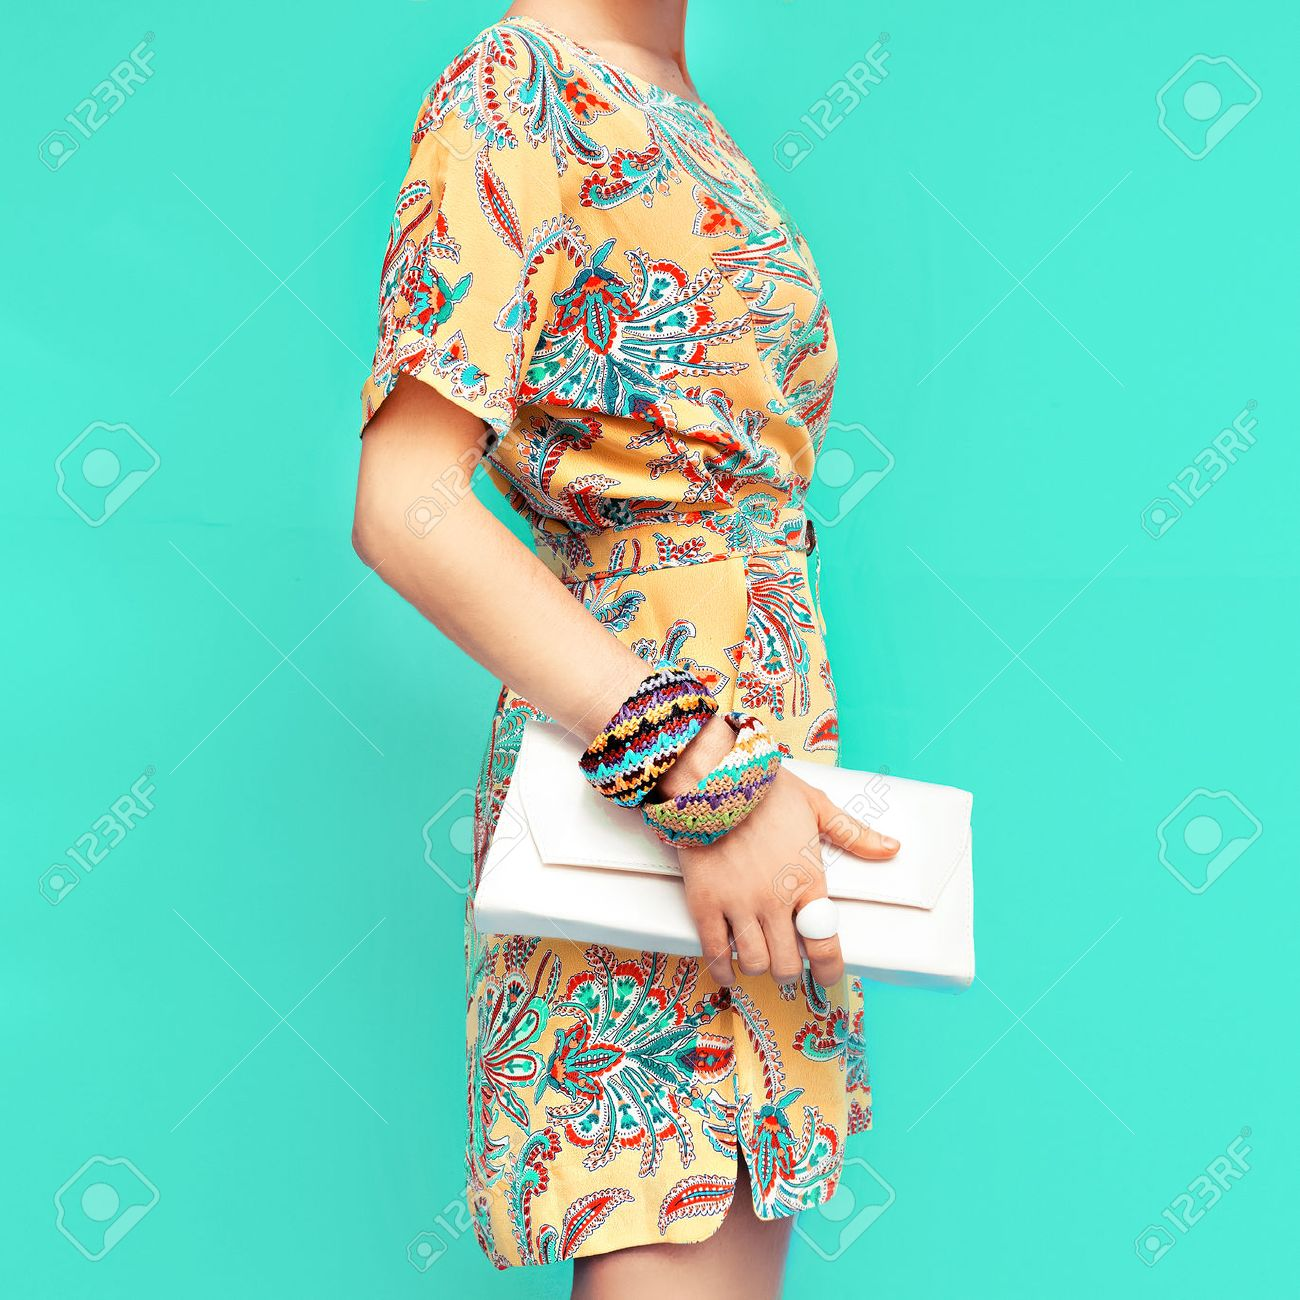 Fashion lady. Beach style. Clothing for vacations. Dress with stylish design - 40336044